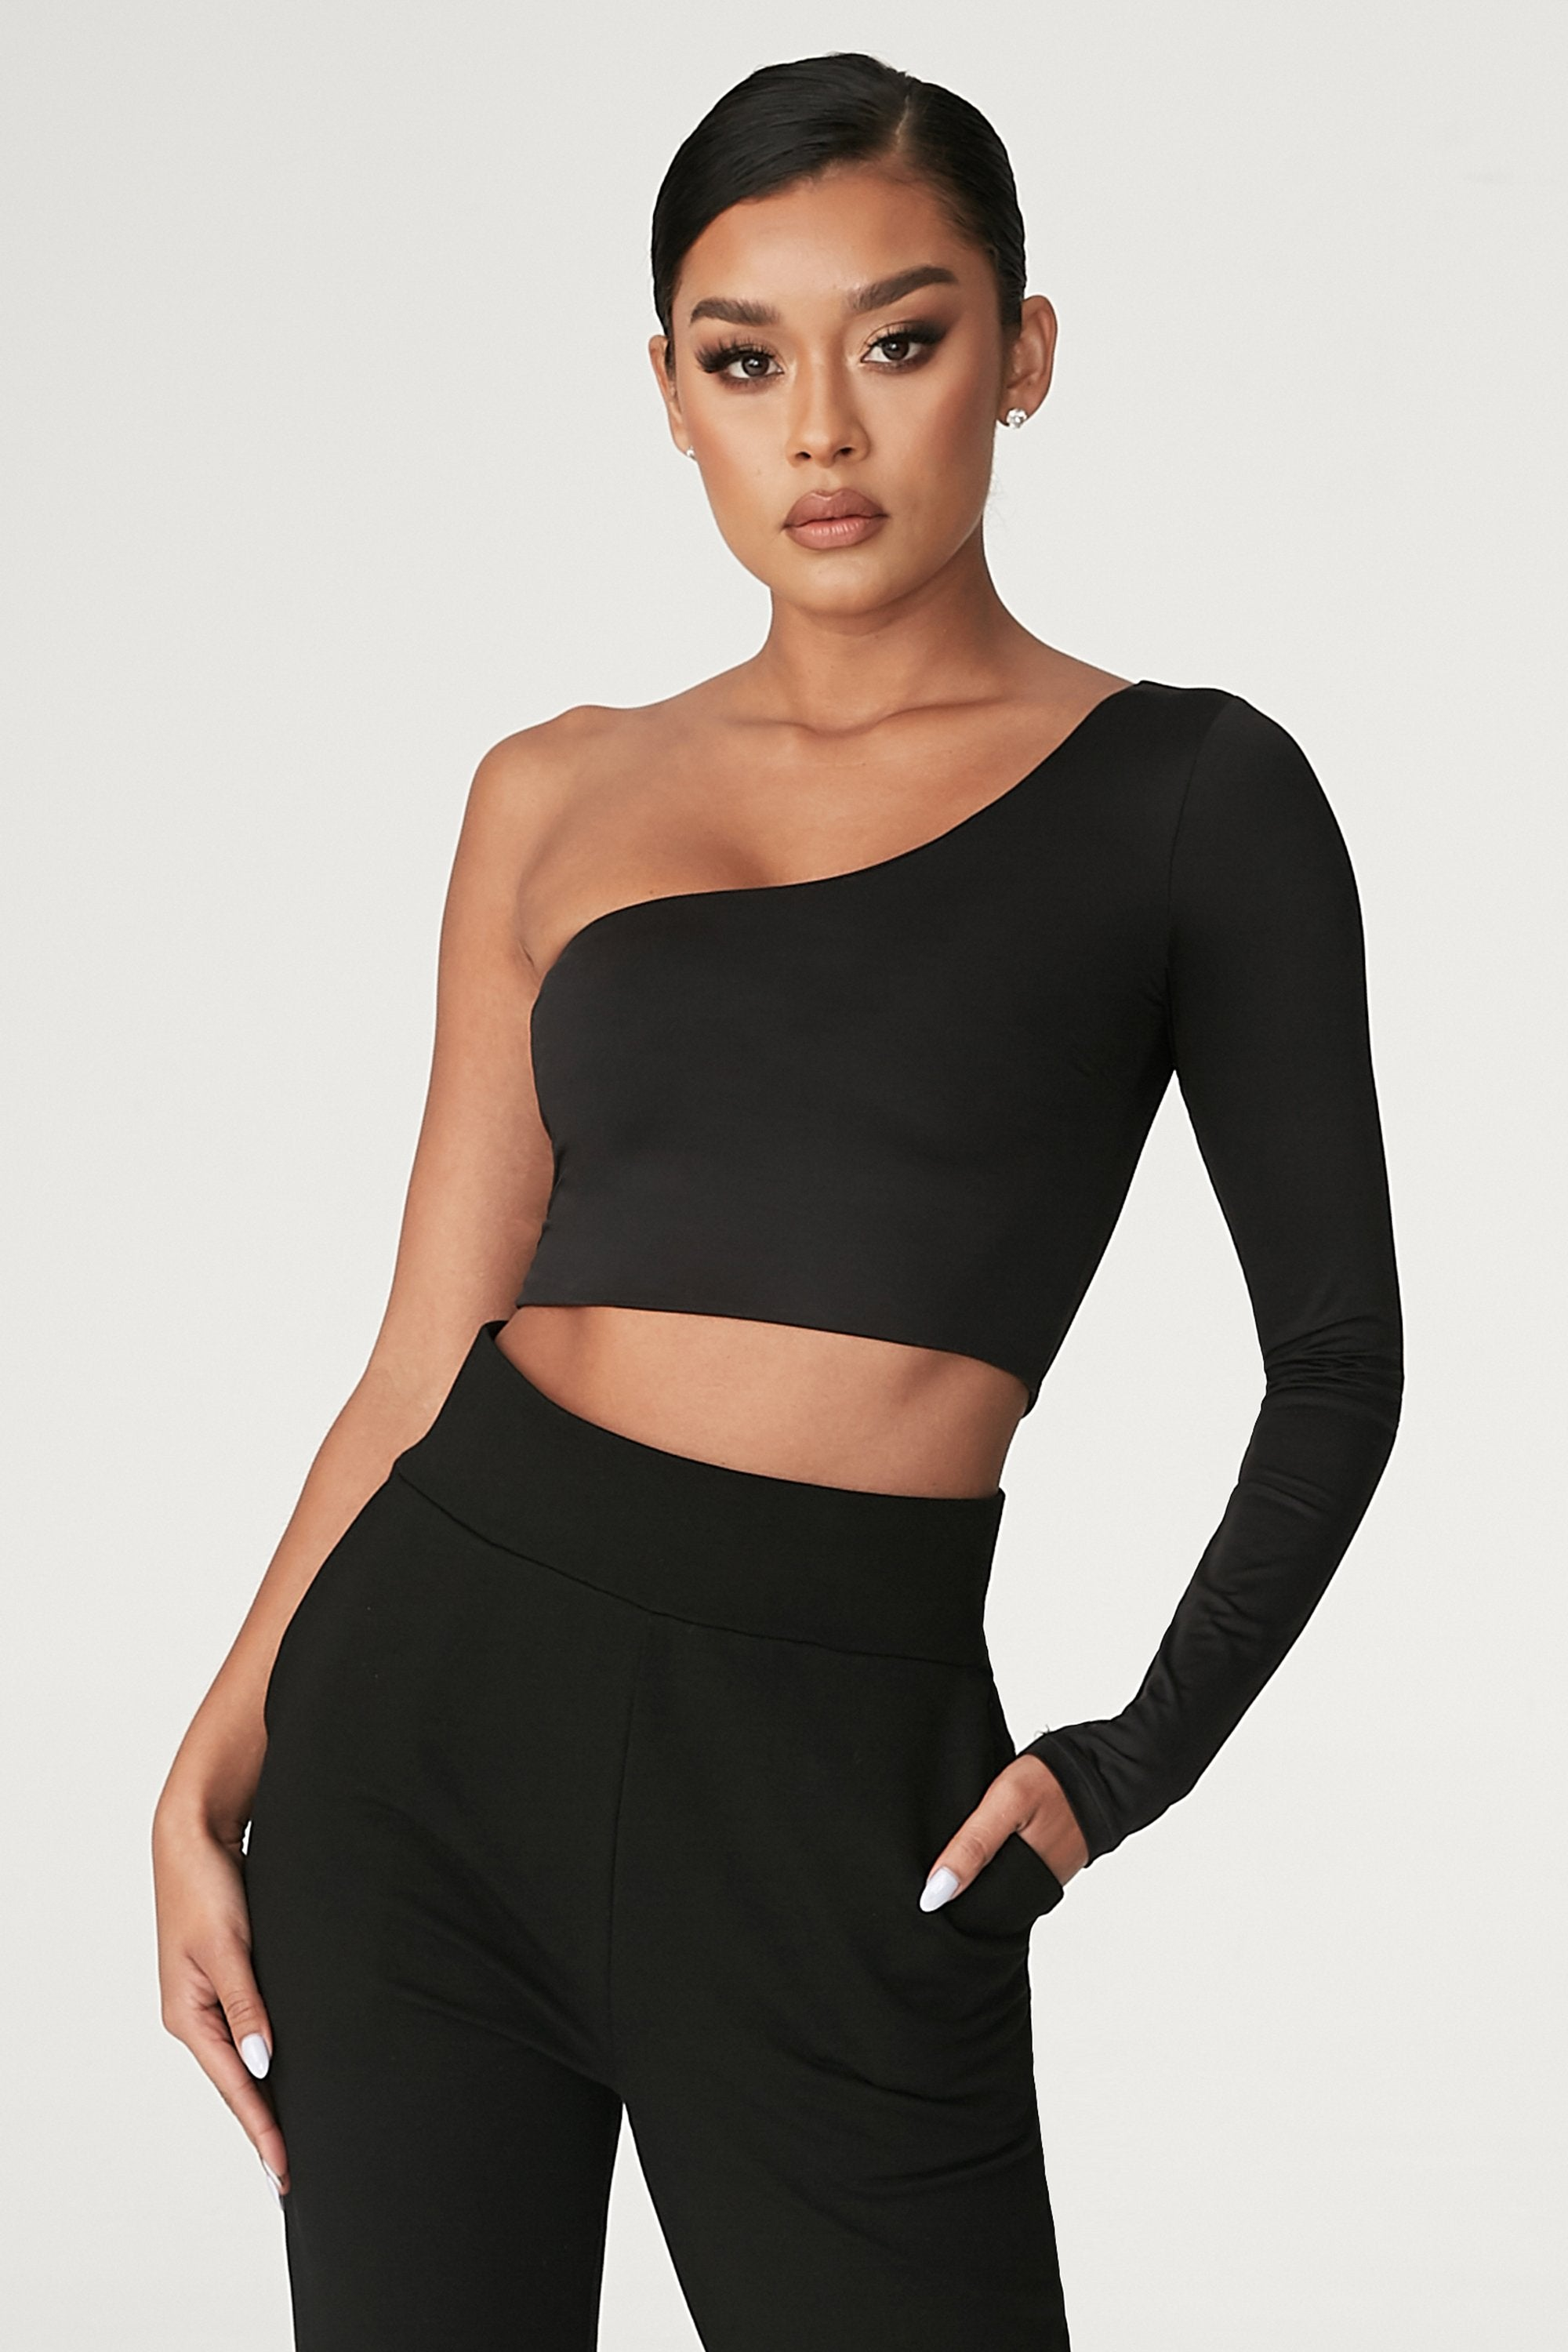 Amirah Adara Pics amirah one shoulder crop top - black